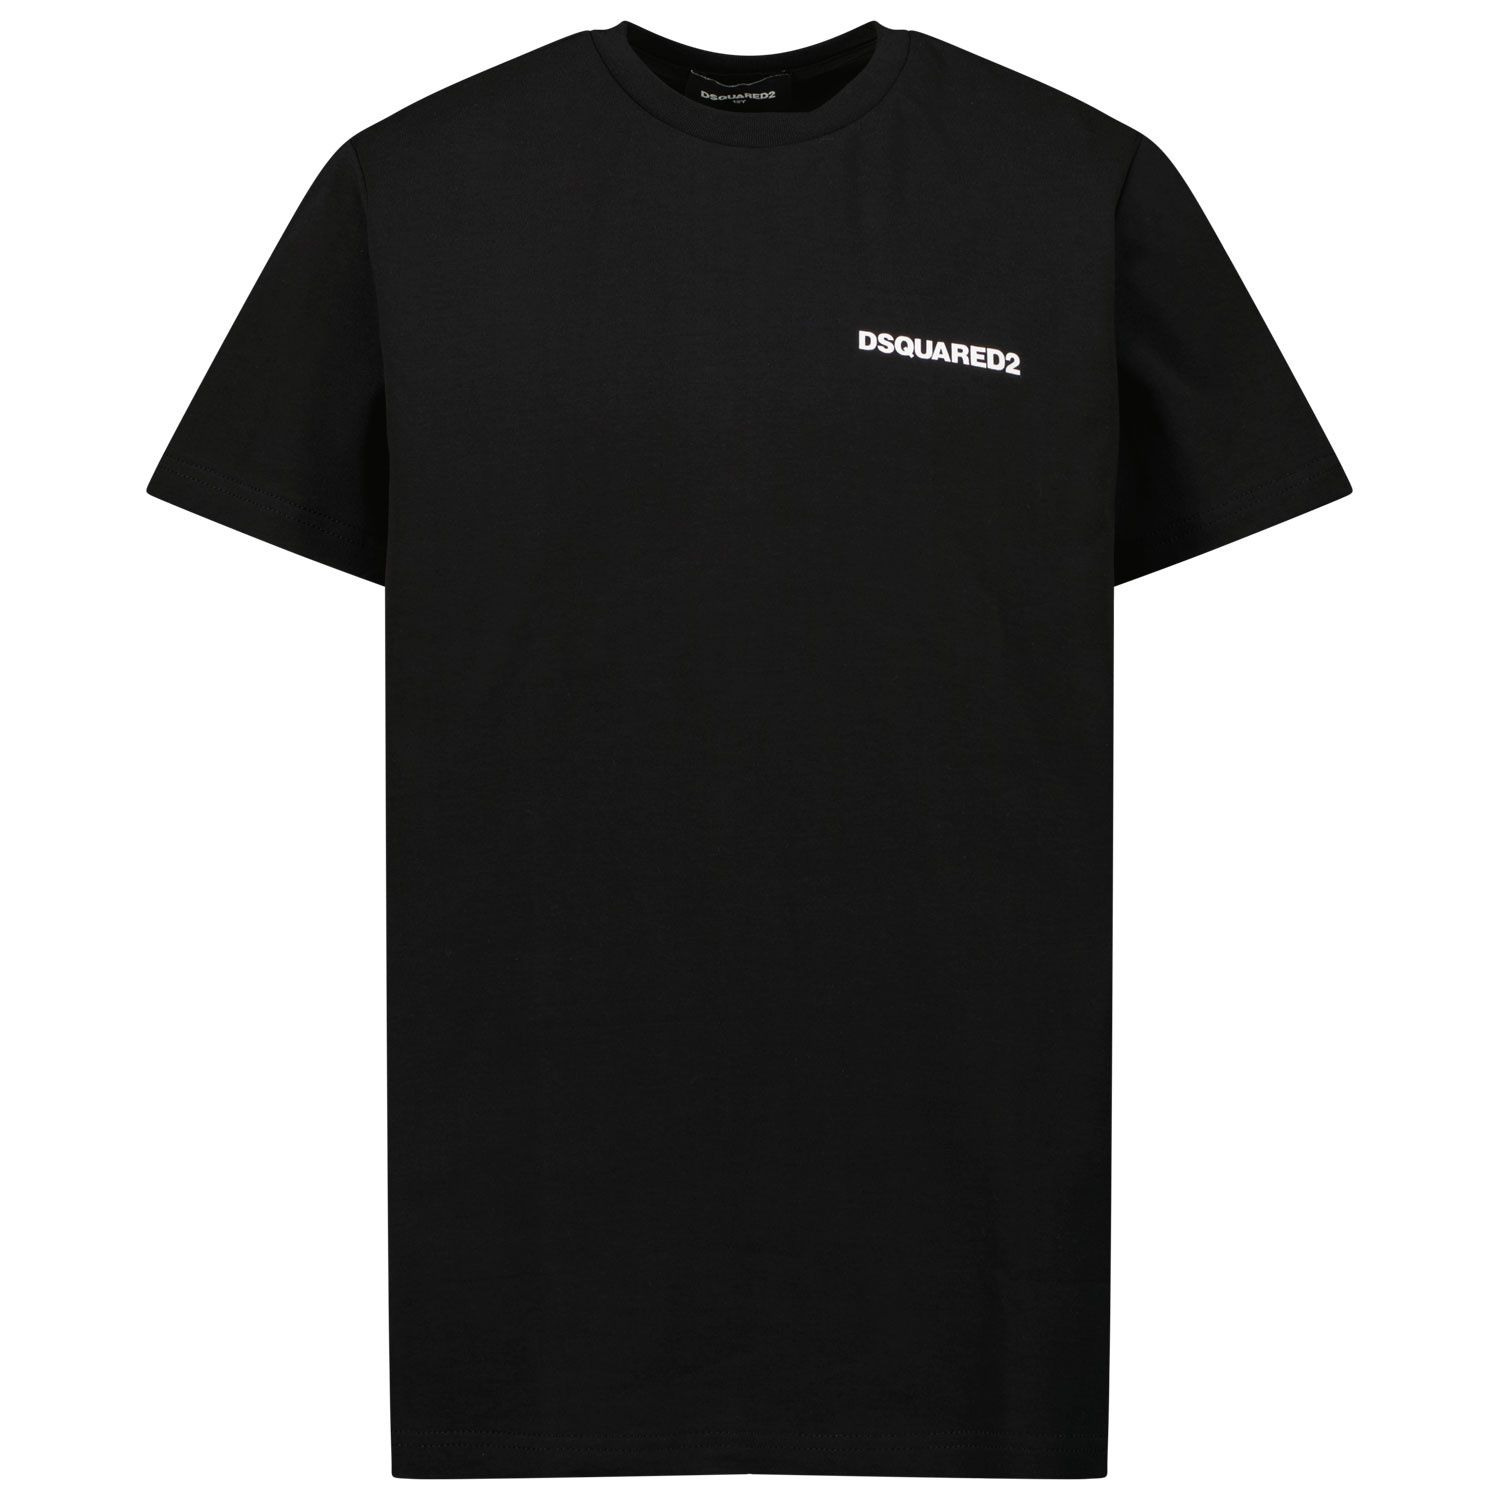 Picture of Dsquared2 DQ0624 kids t-shirt black